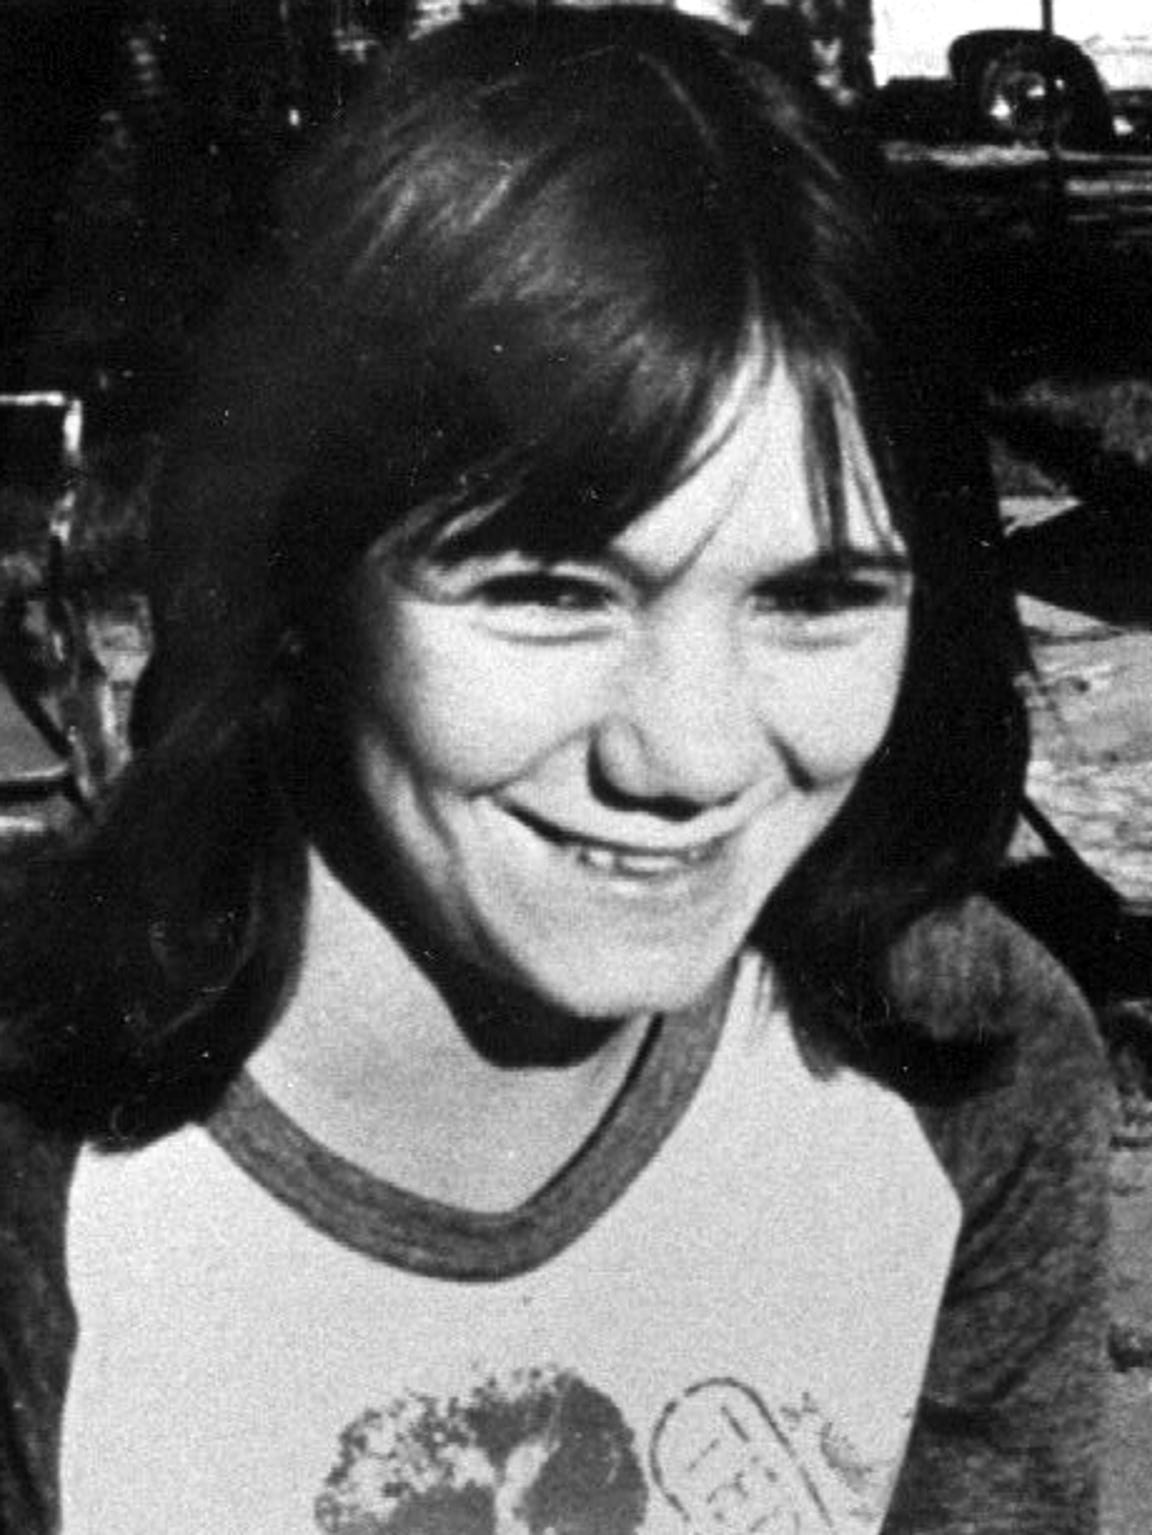 Karen Baker, 20, disappeared June 5, 1987. Her body